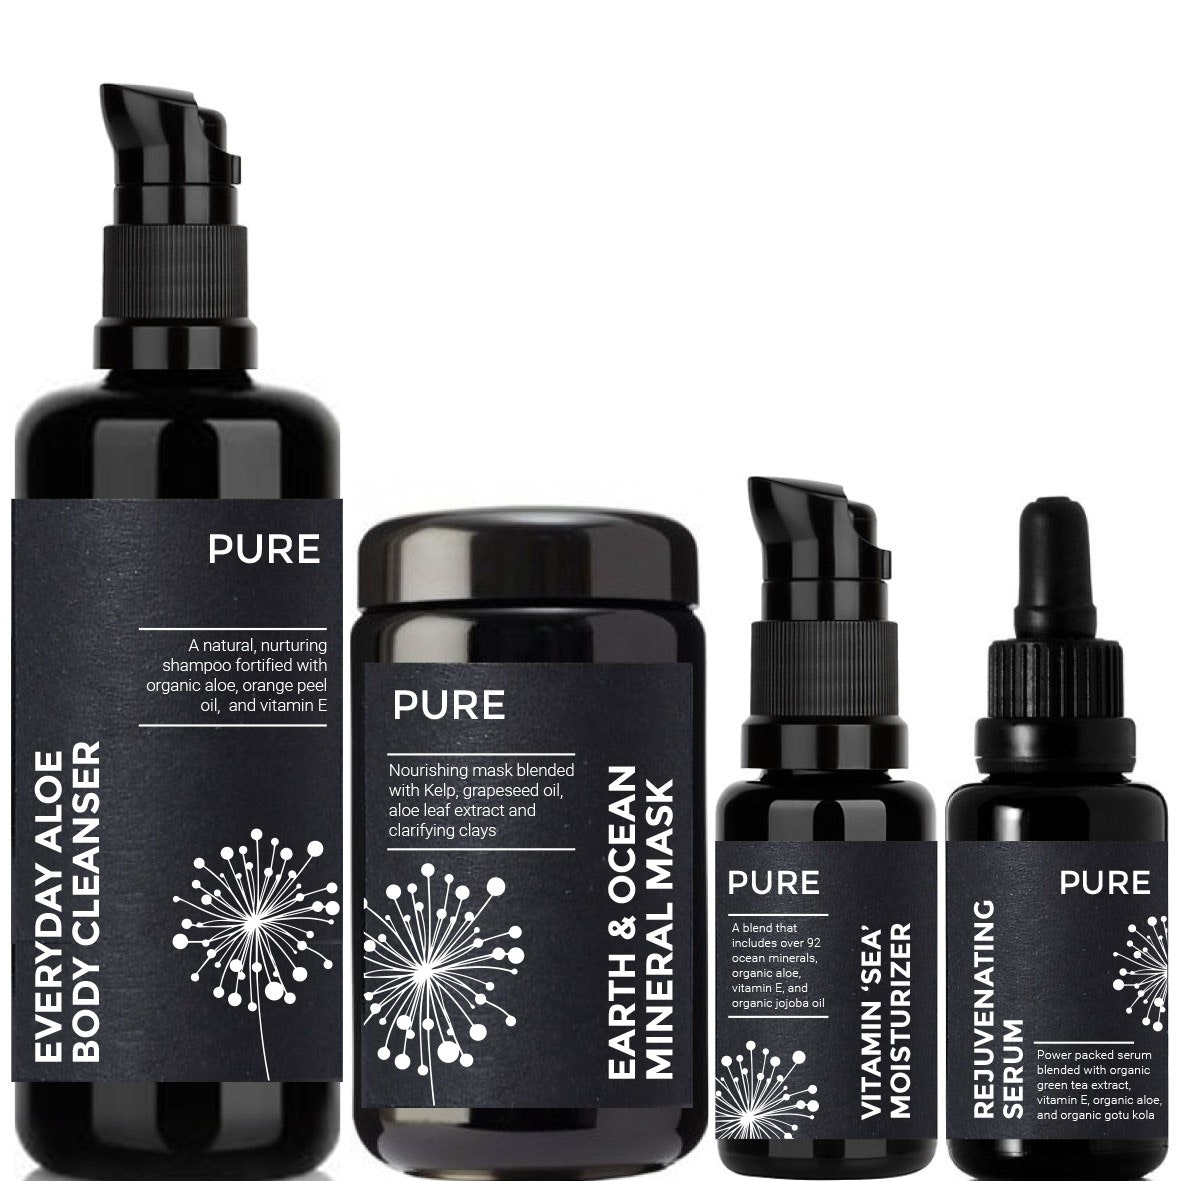 Pure Cosmetics packaging